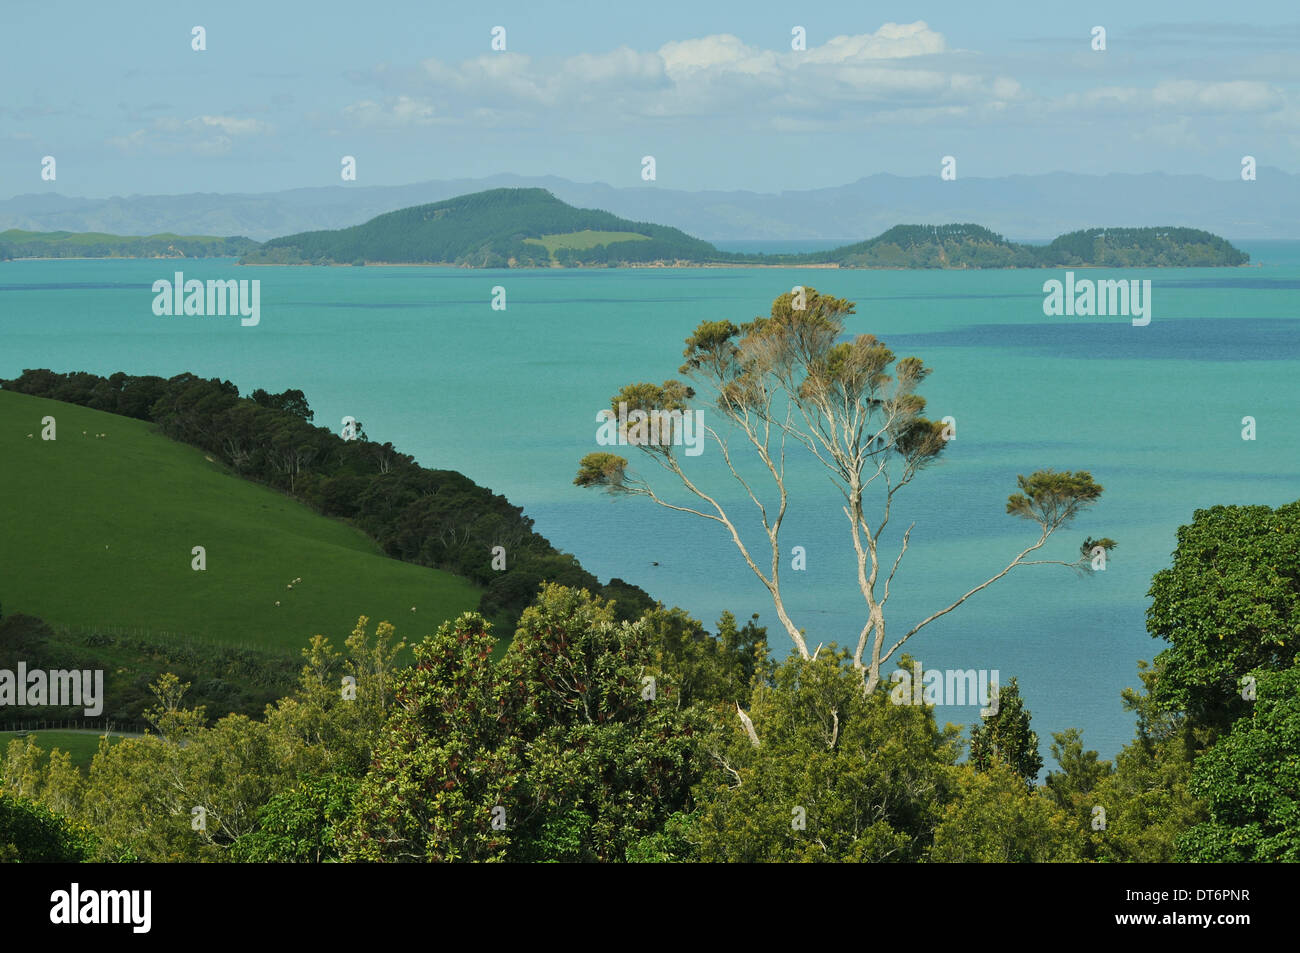 Hauraki Gulf view from Duder Regional Park near Auckland, New Zealand - Stock Image